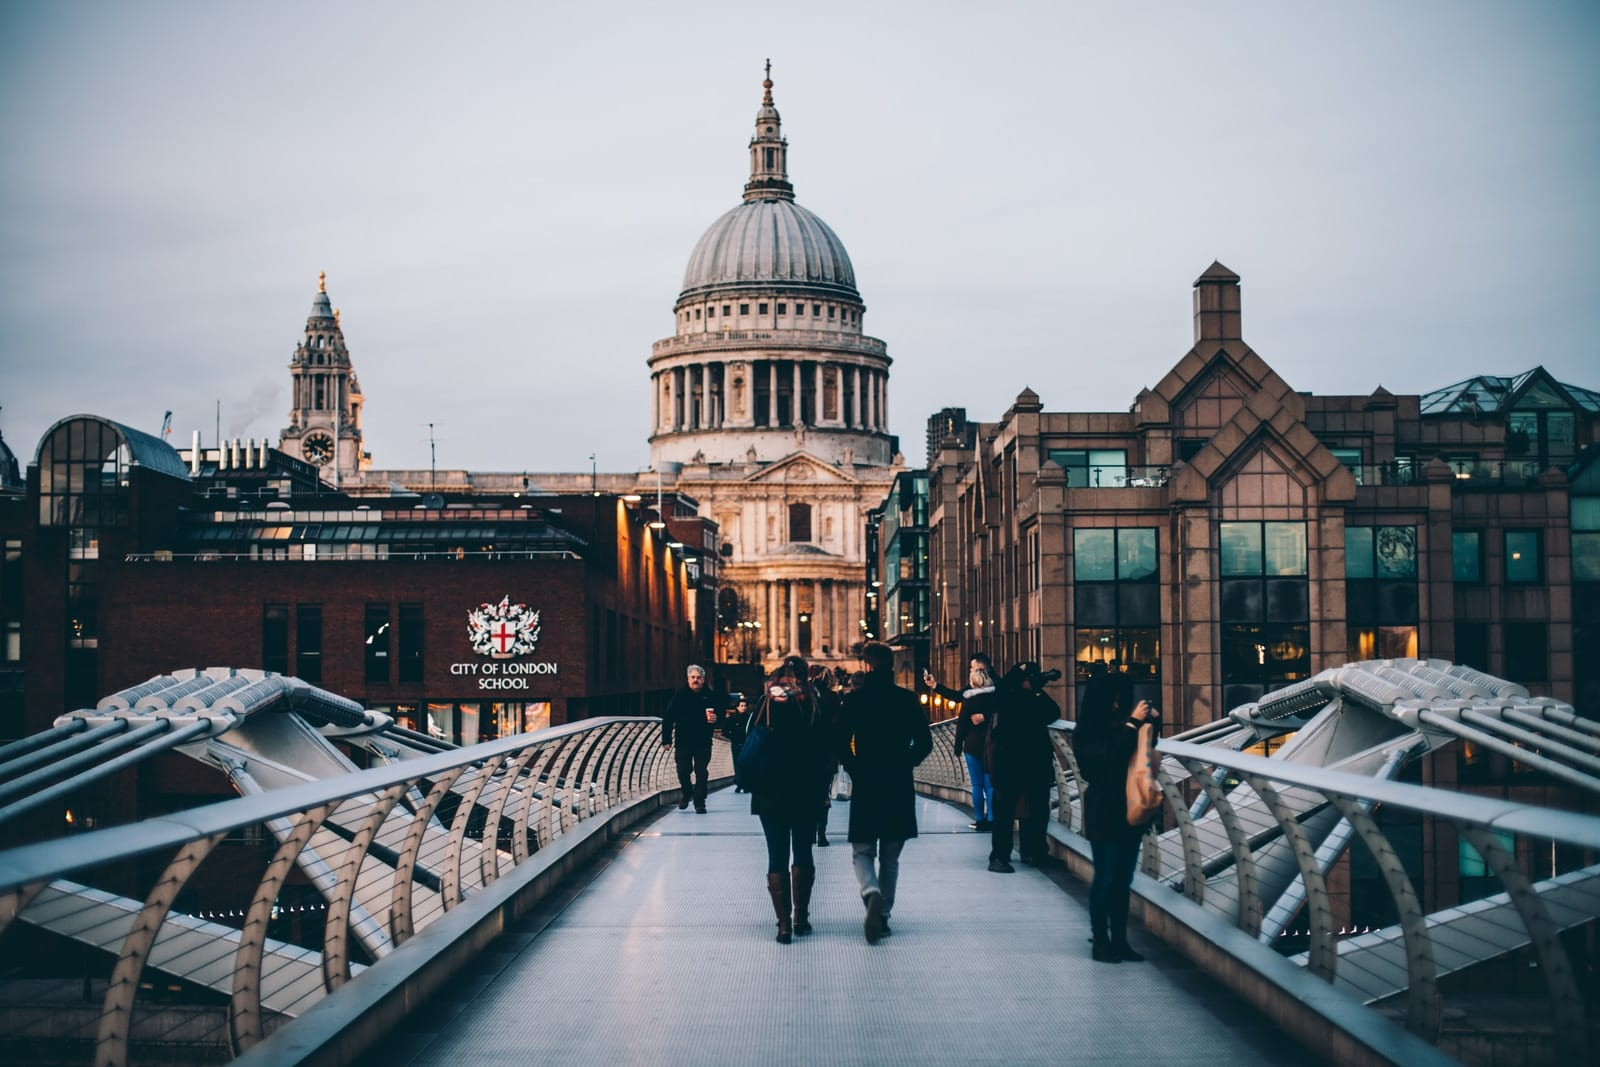 One Day in London Itinerary: See the best of London in 24 hours